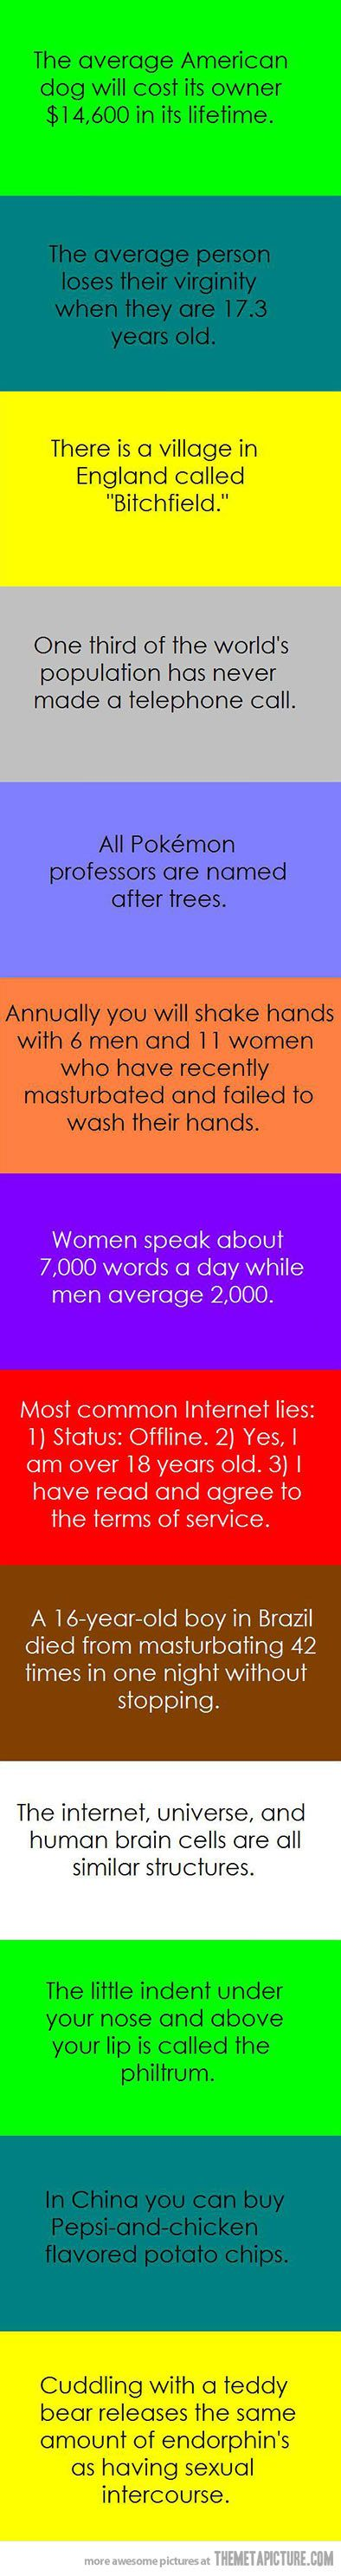 Facts you were not aware of... - The Meta Picture